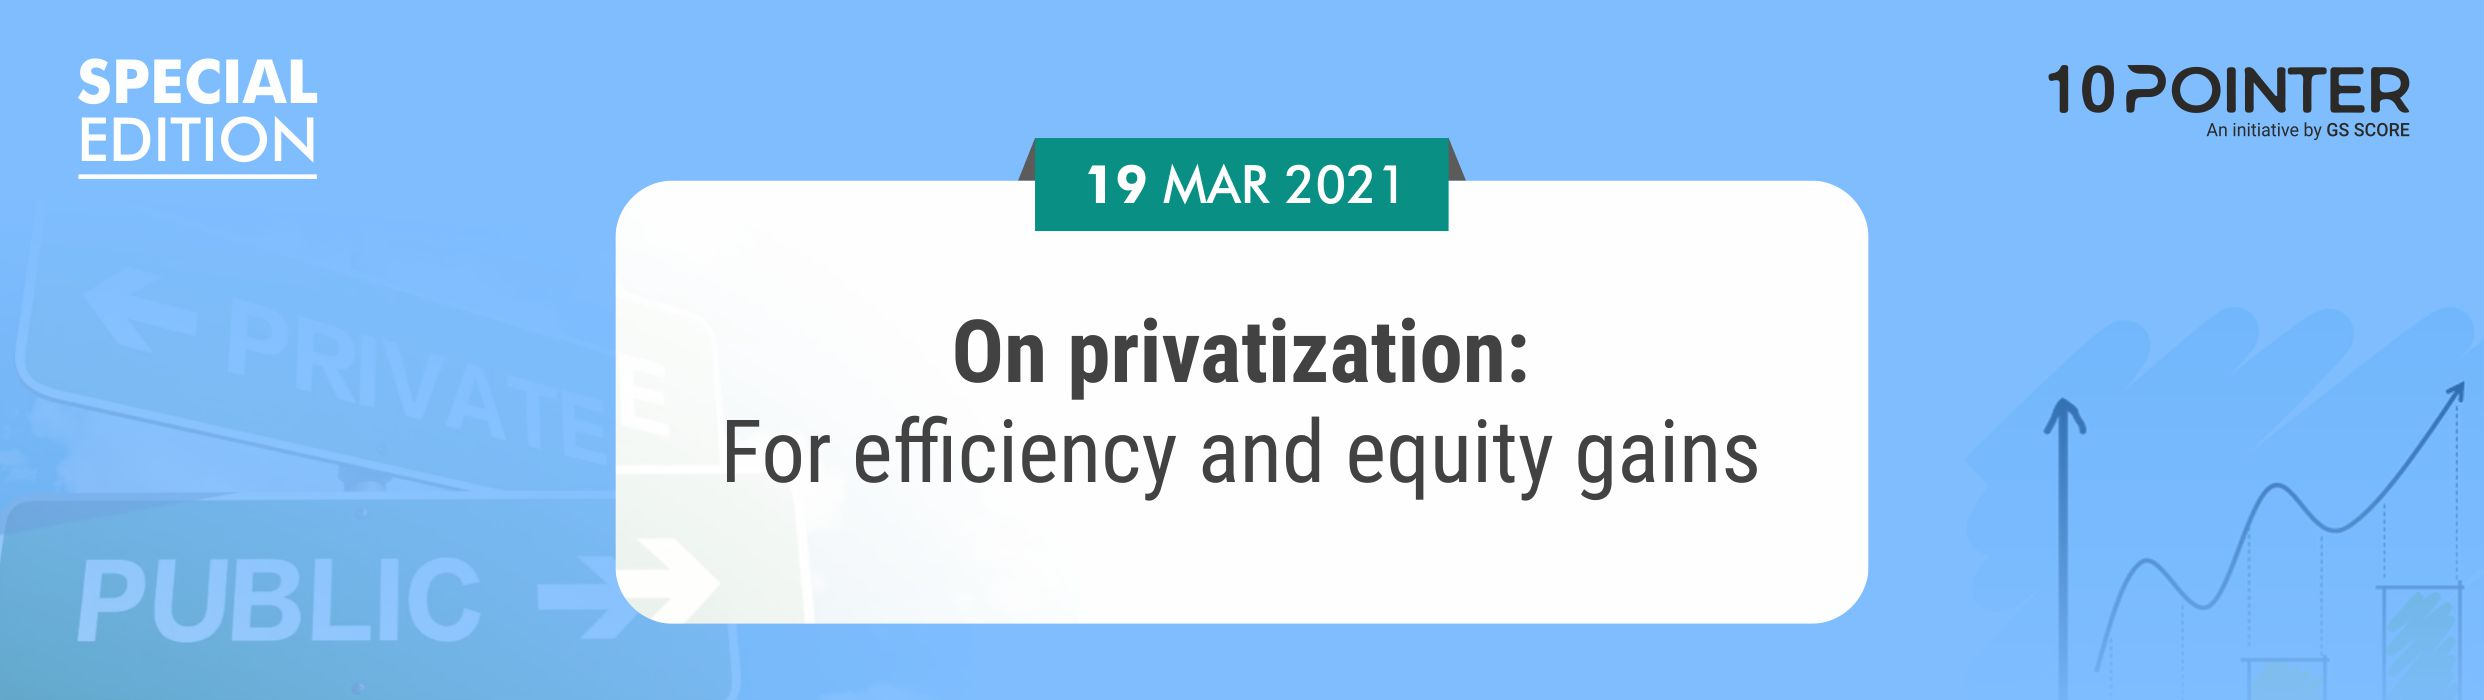 On privatization: For efficiency and equity gains